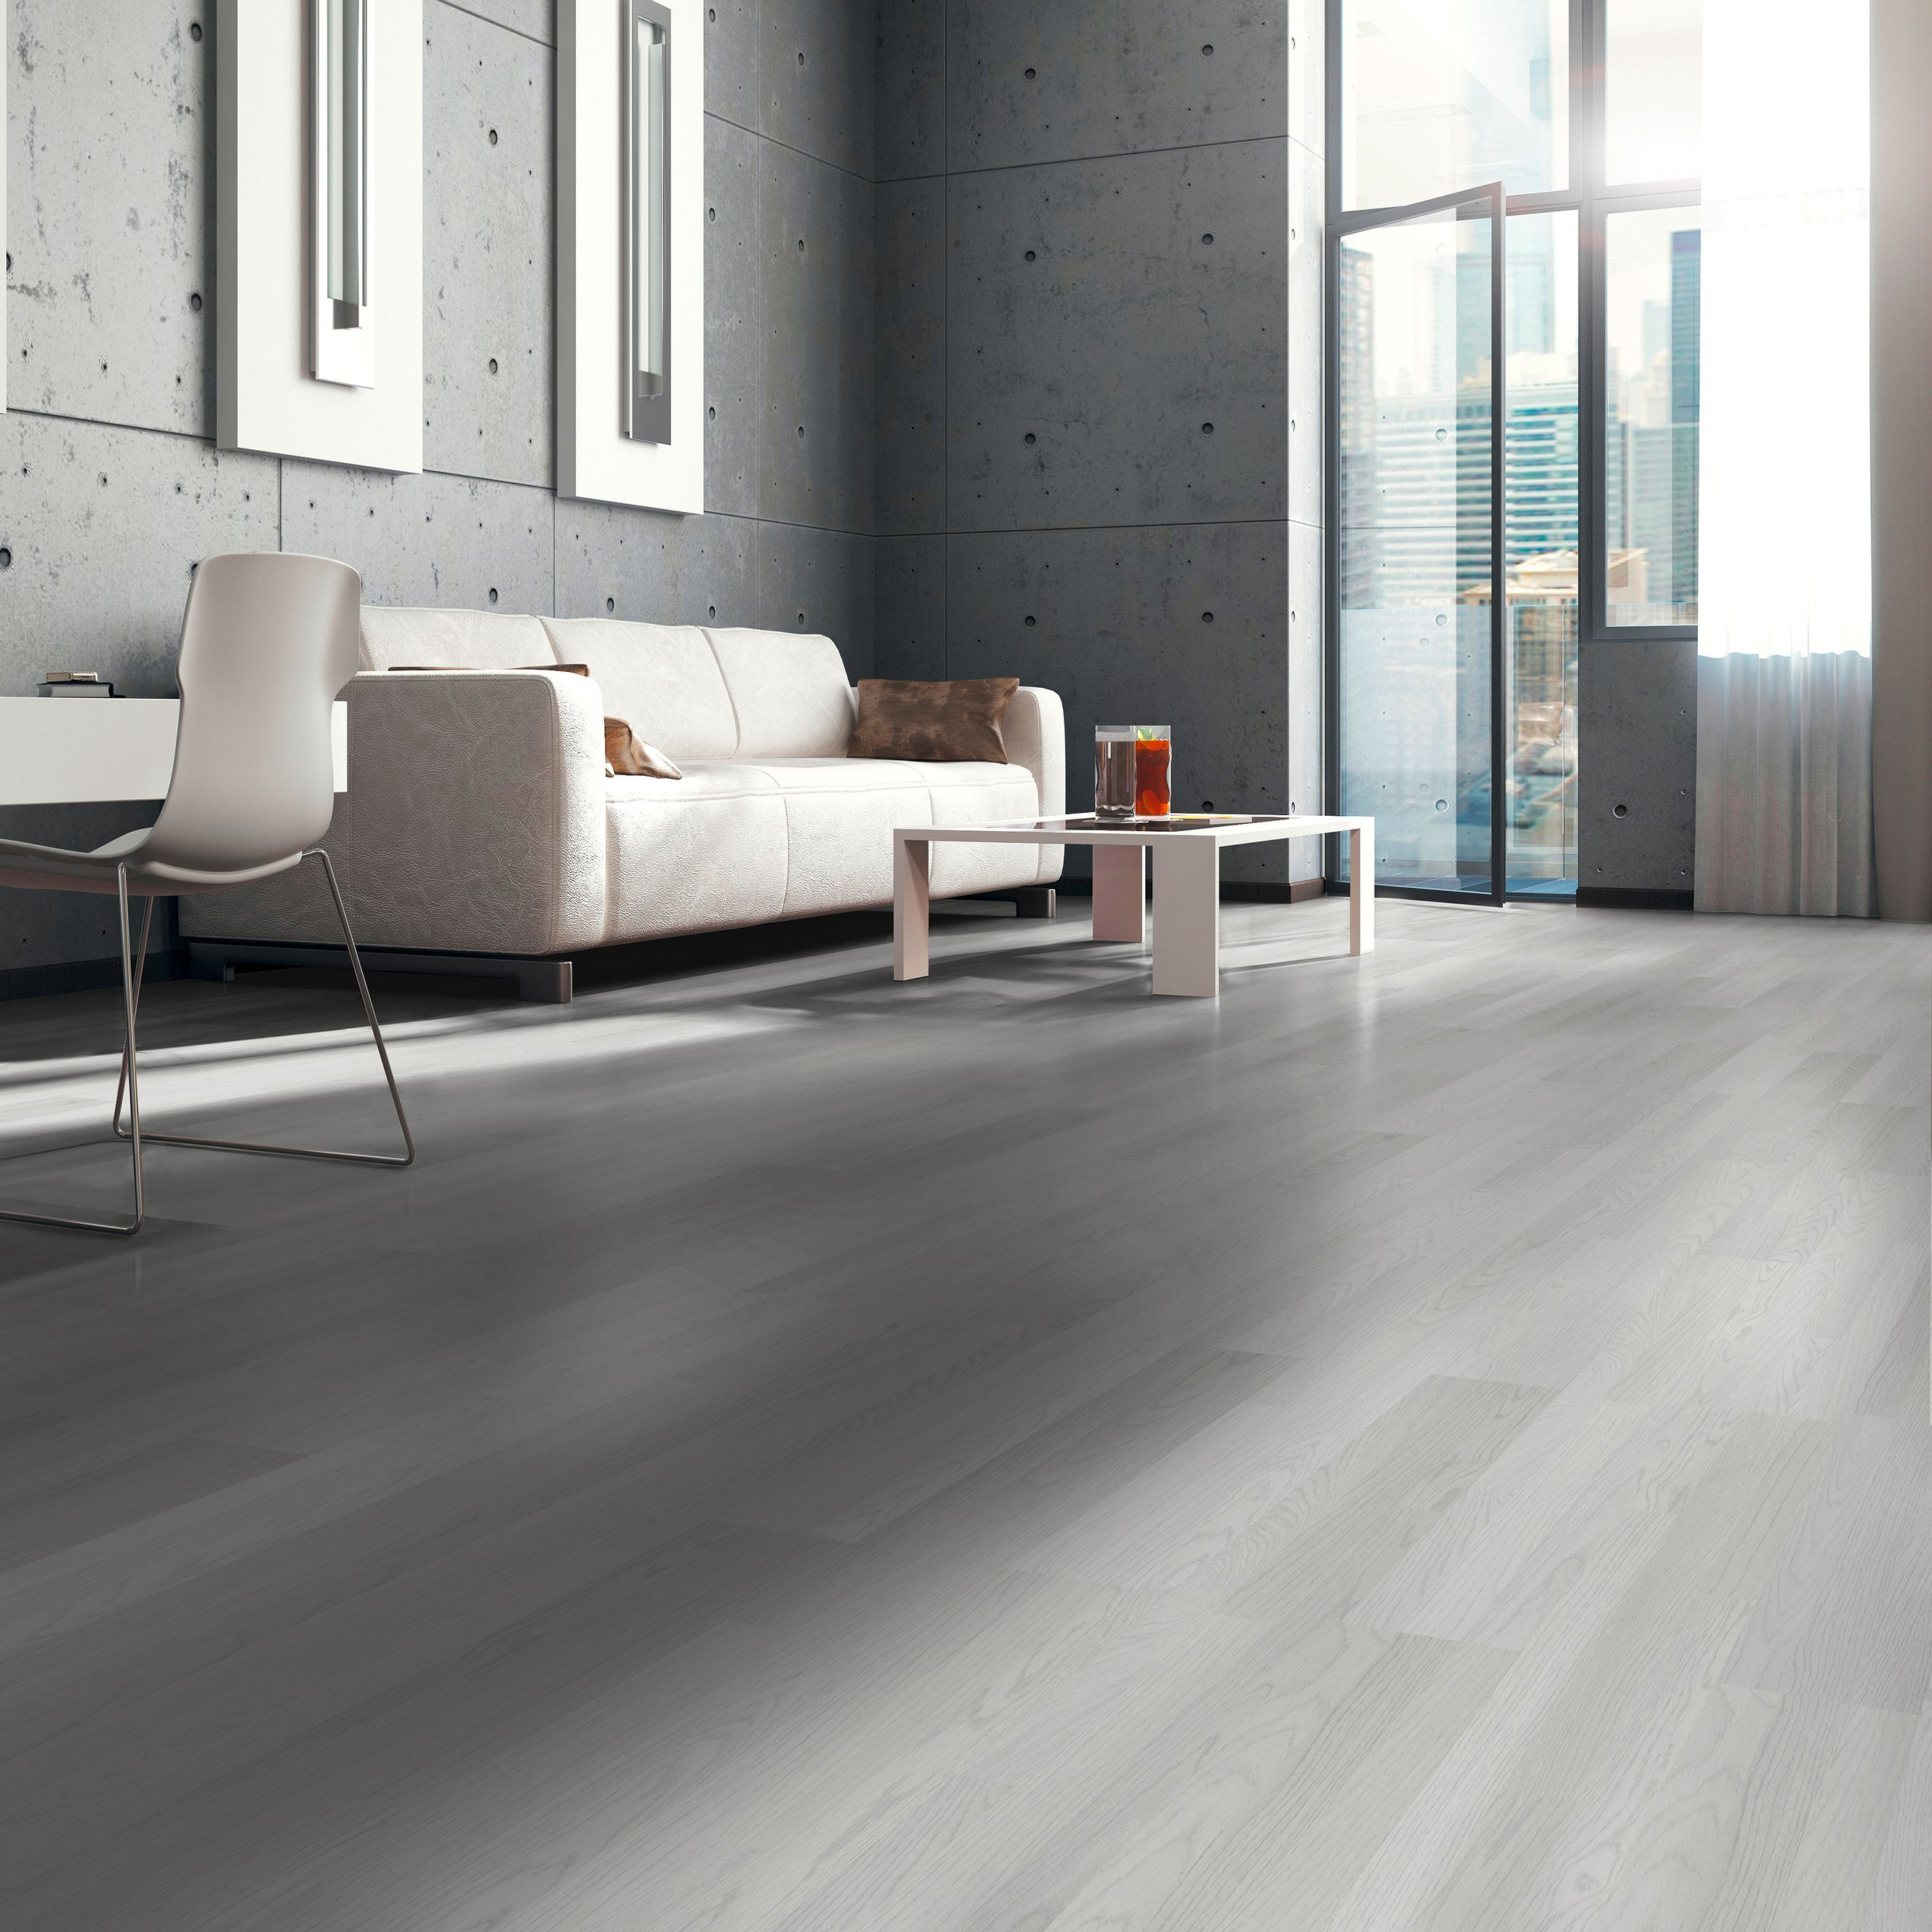 Whitewash Oak White Wood Effect Laminate Flooring 3 m²